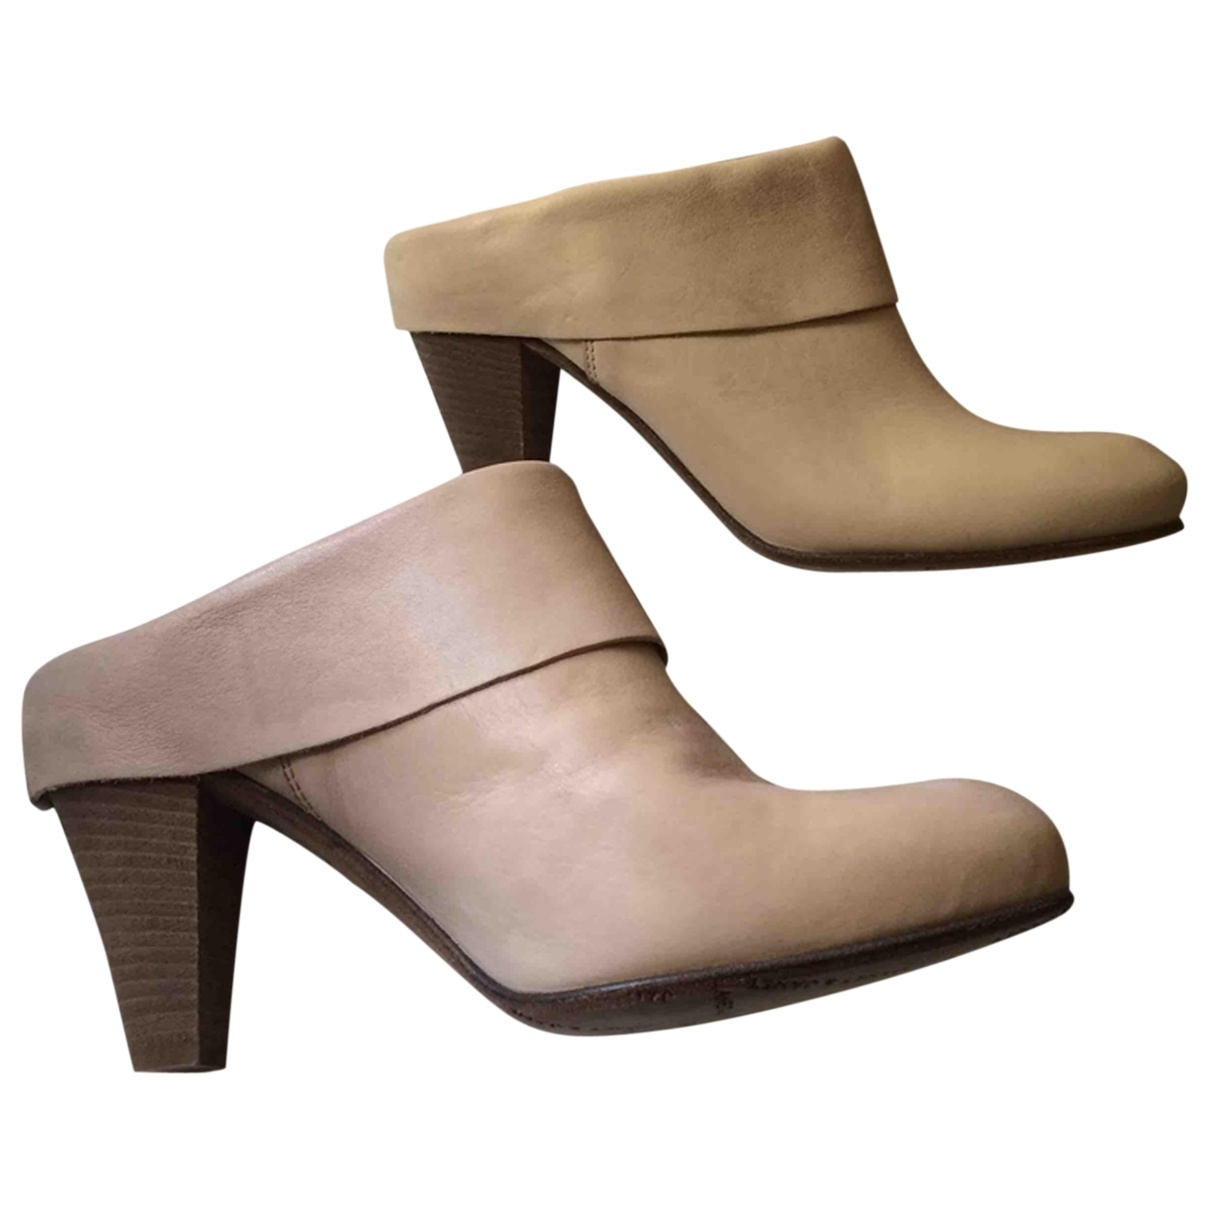 Janet & Janet \N Beige Leather Mules & Clogs for Women 37 EU